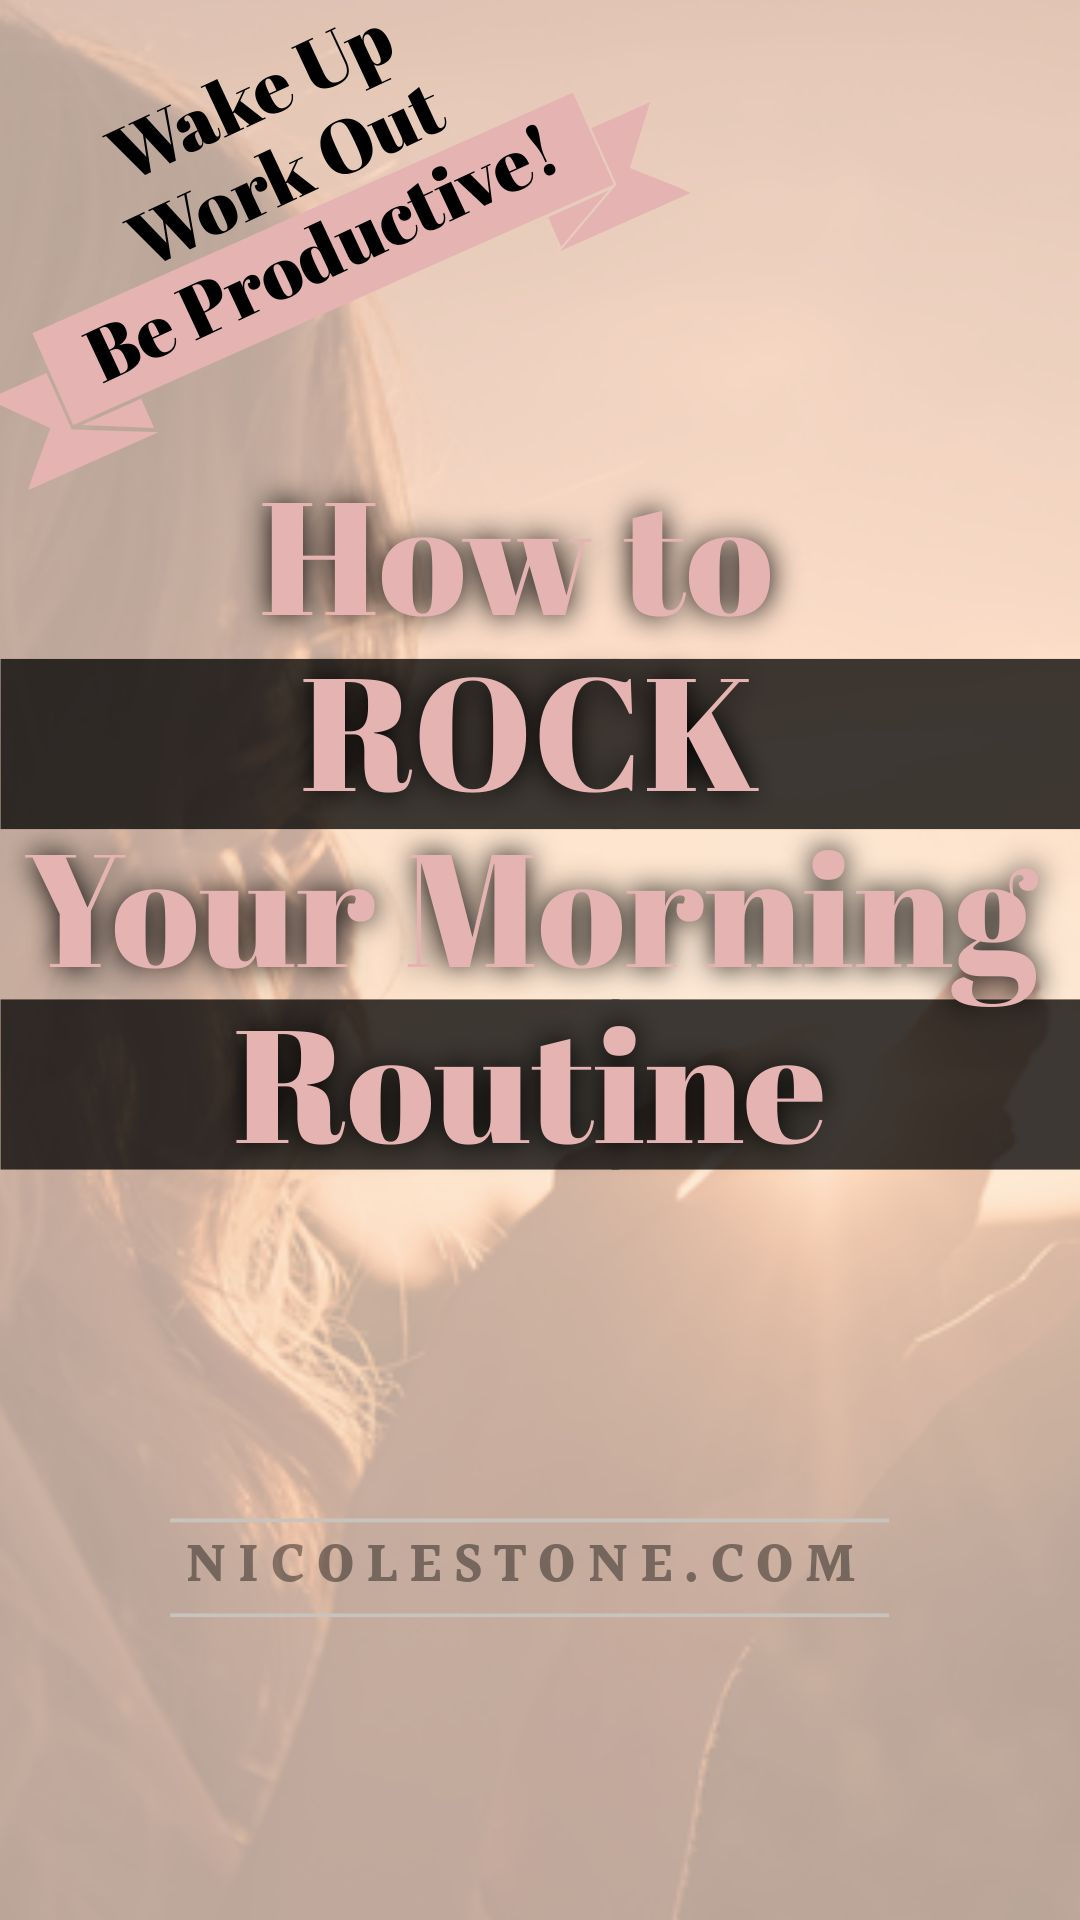 Learn how to become a morning person and rock your routine! #productivity #routine #morning